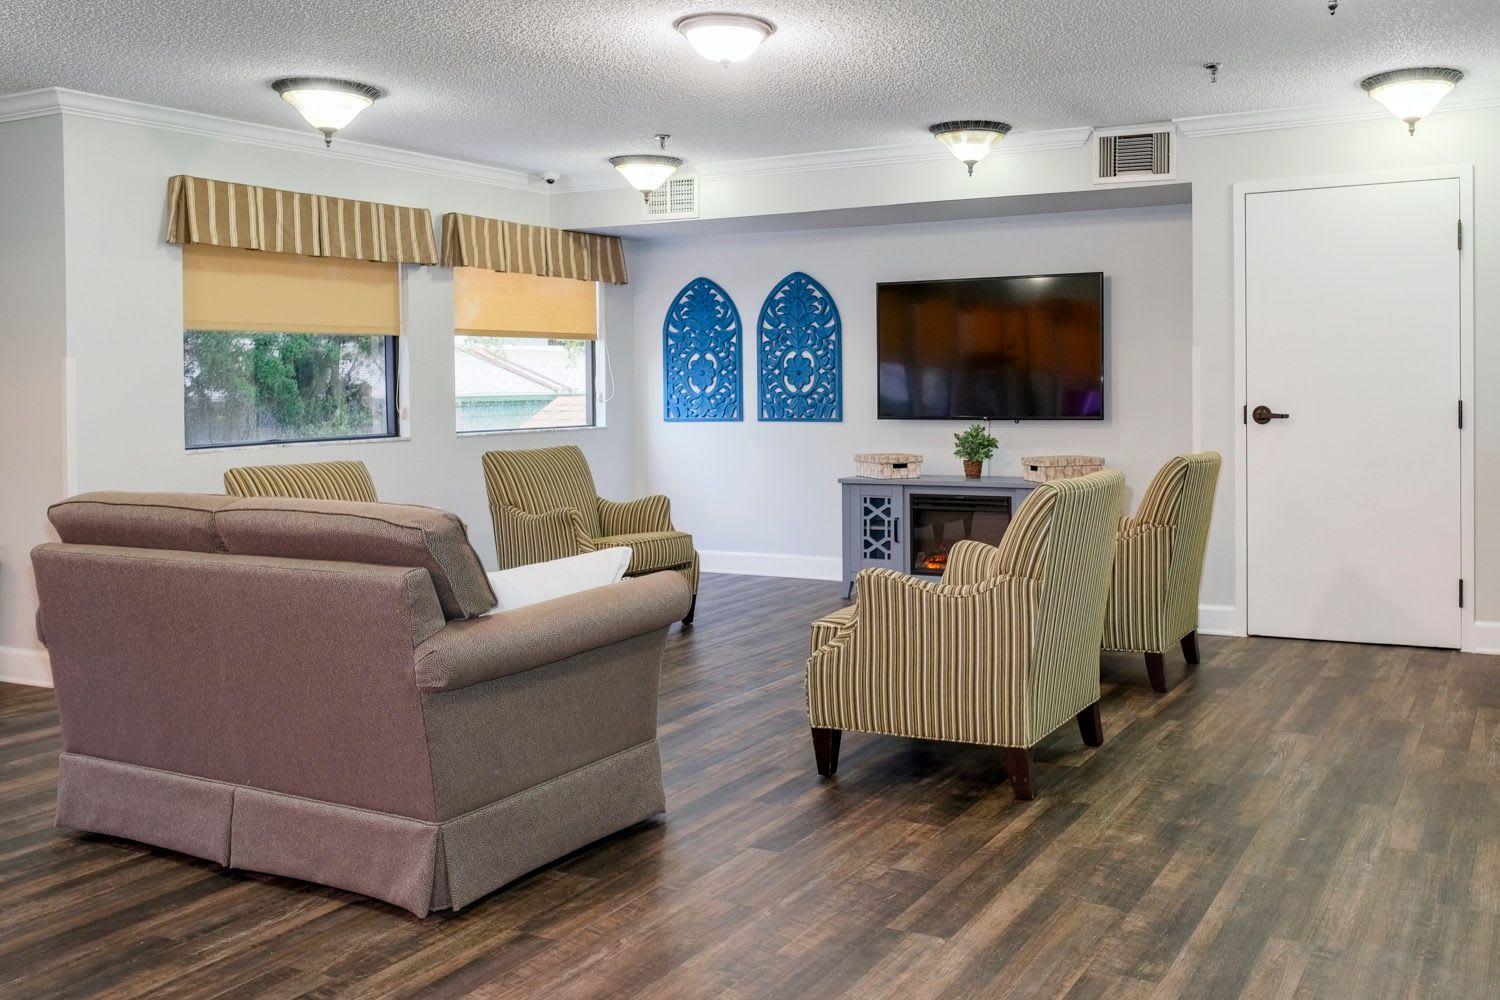 Couches at Grand Villa of Ormond Beach in Florida